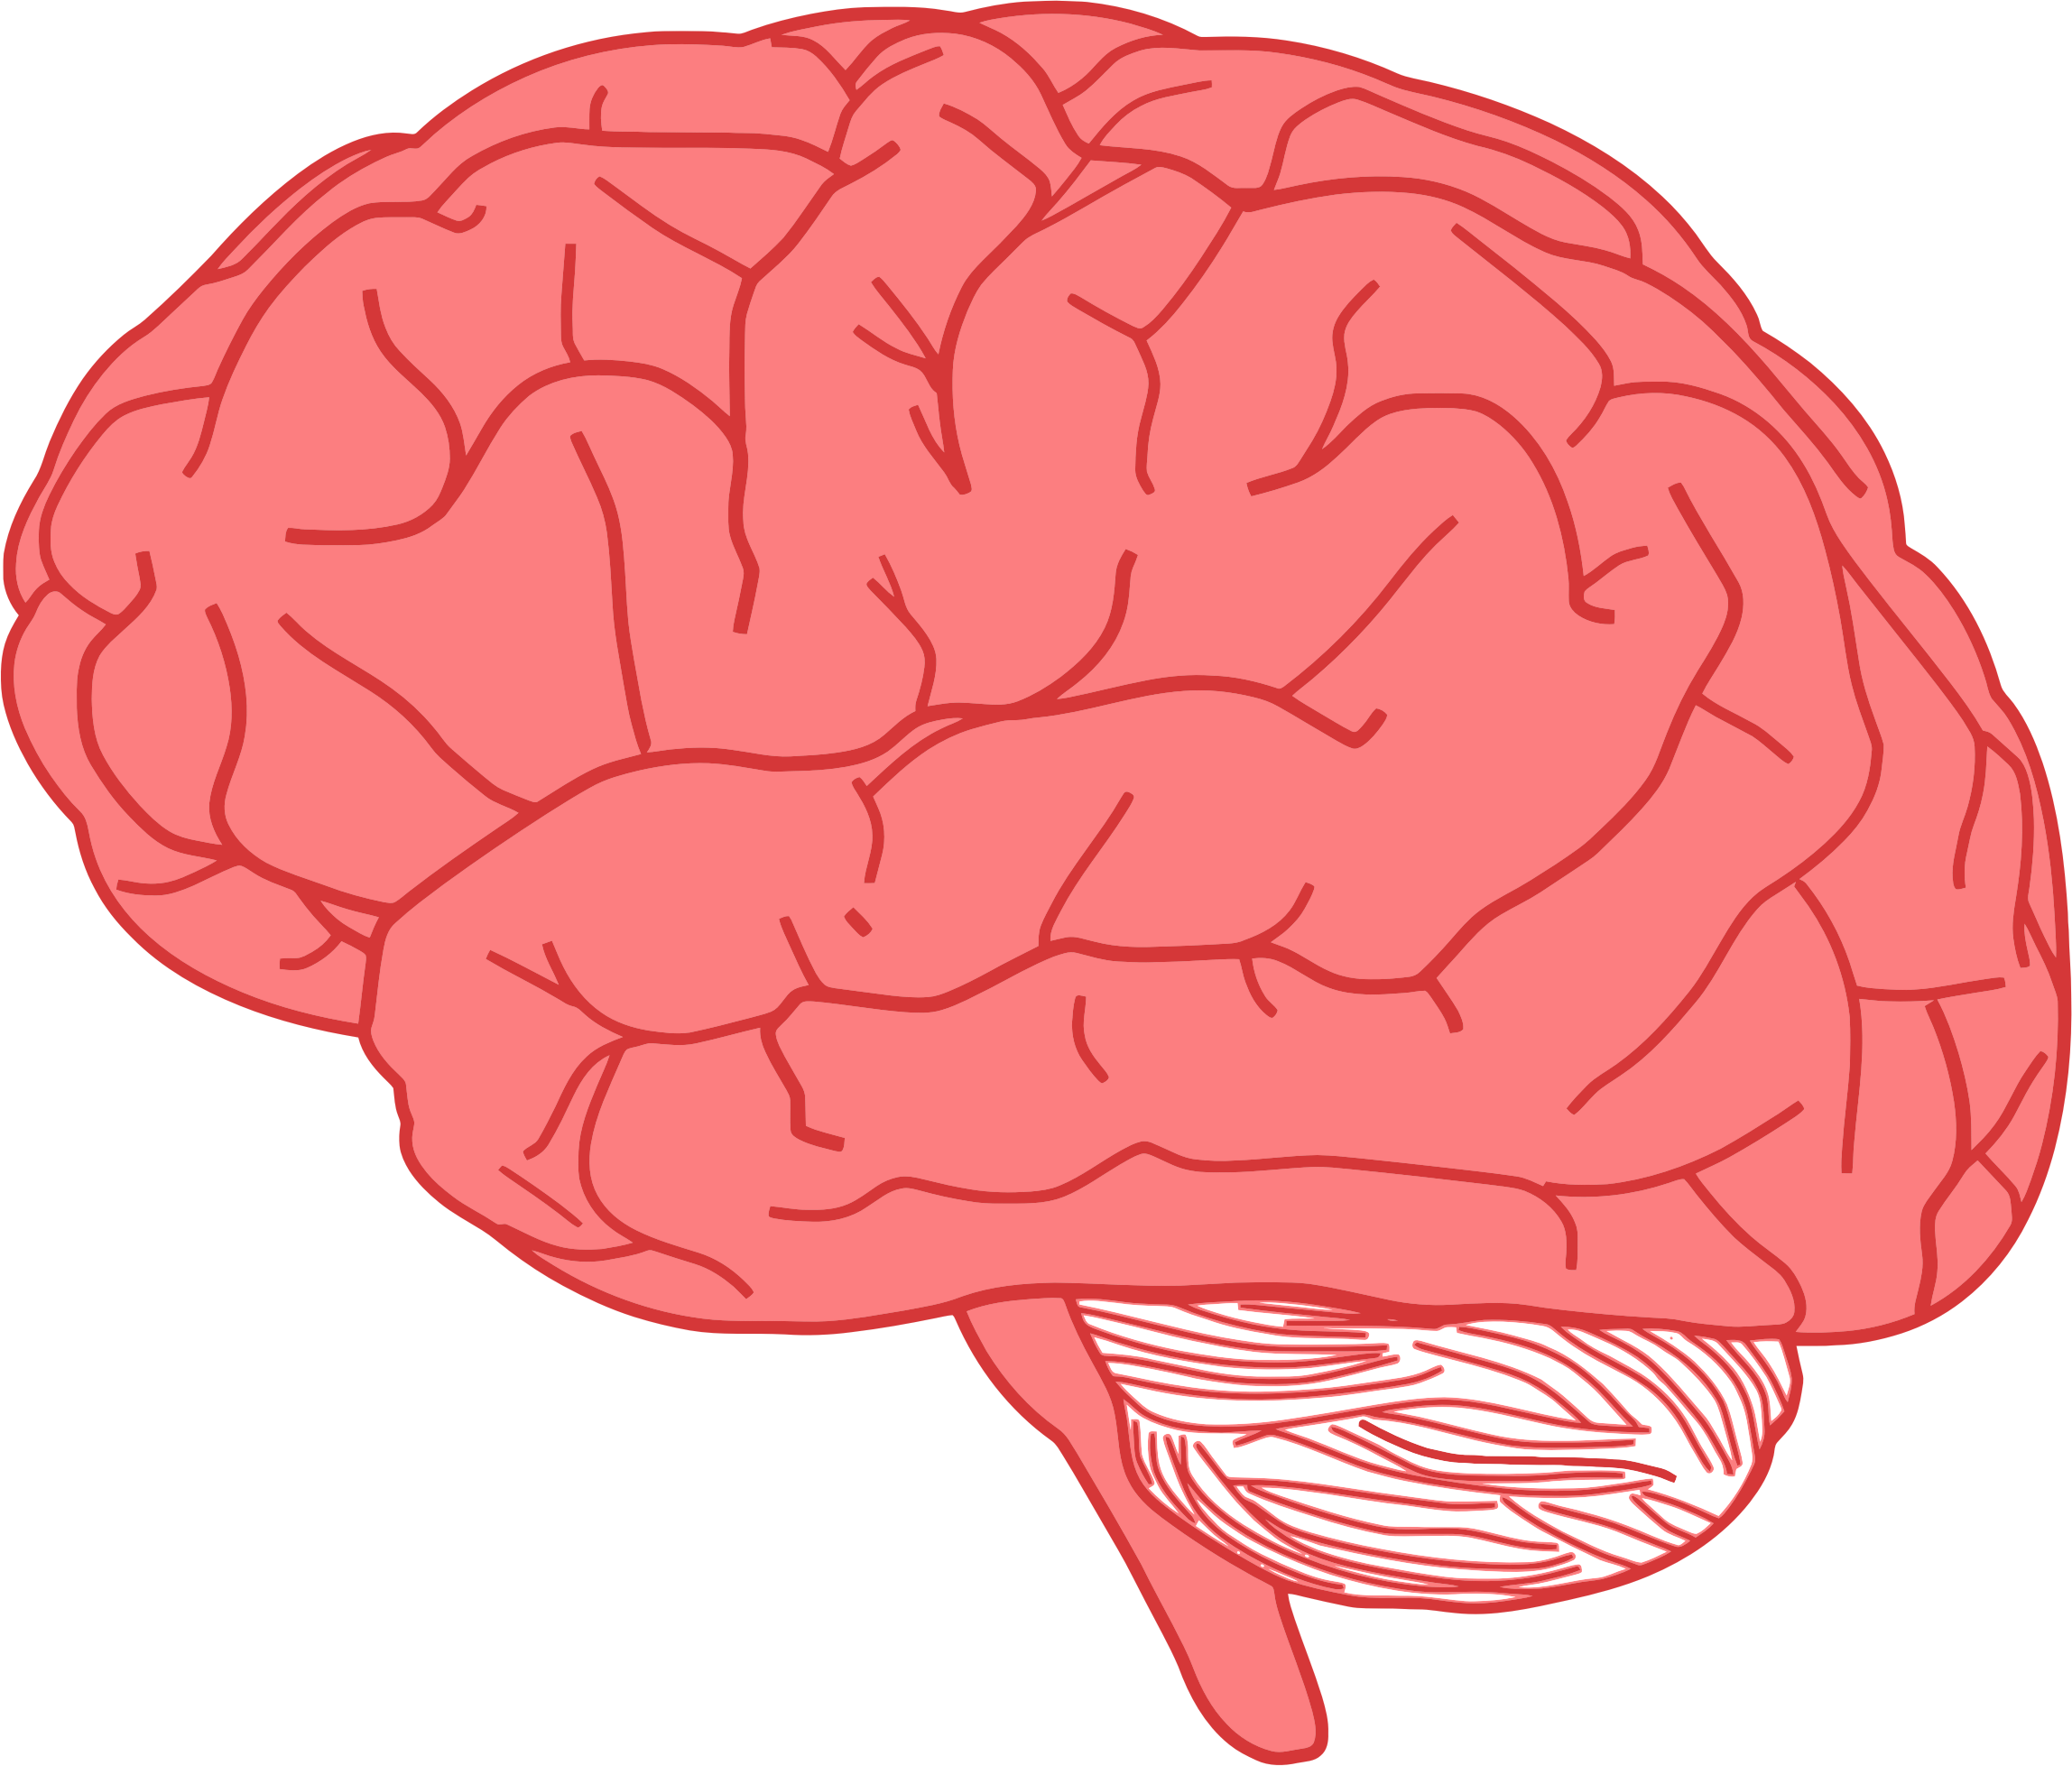 Brain muscle clipart banner black and white stock Mind Clipart Muscle - Brain Clipart , Transparent Cartoon - Jing.fm banner black and white stock